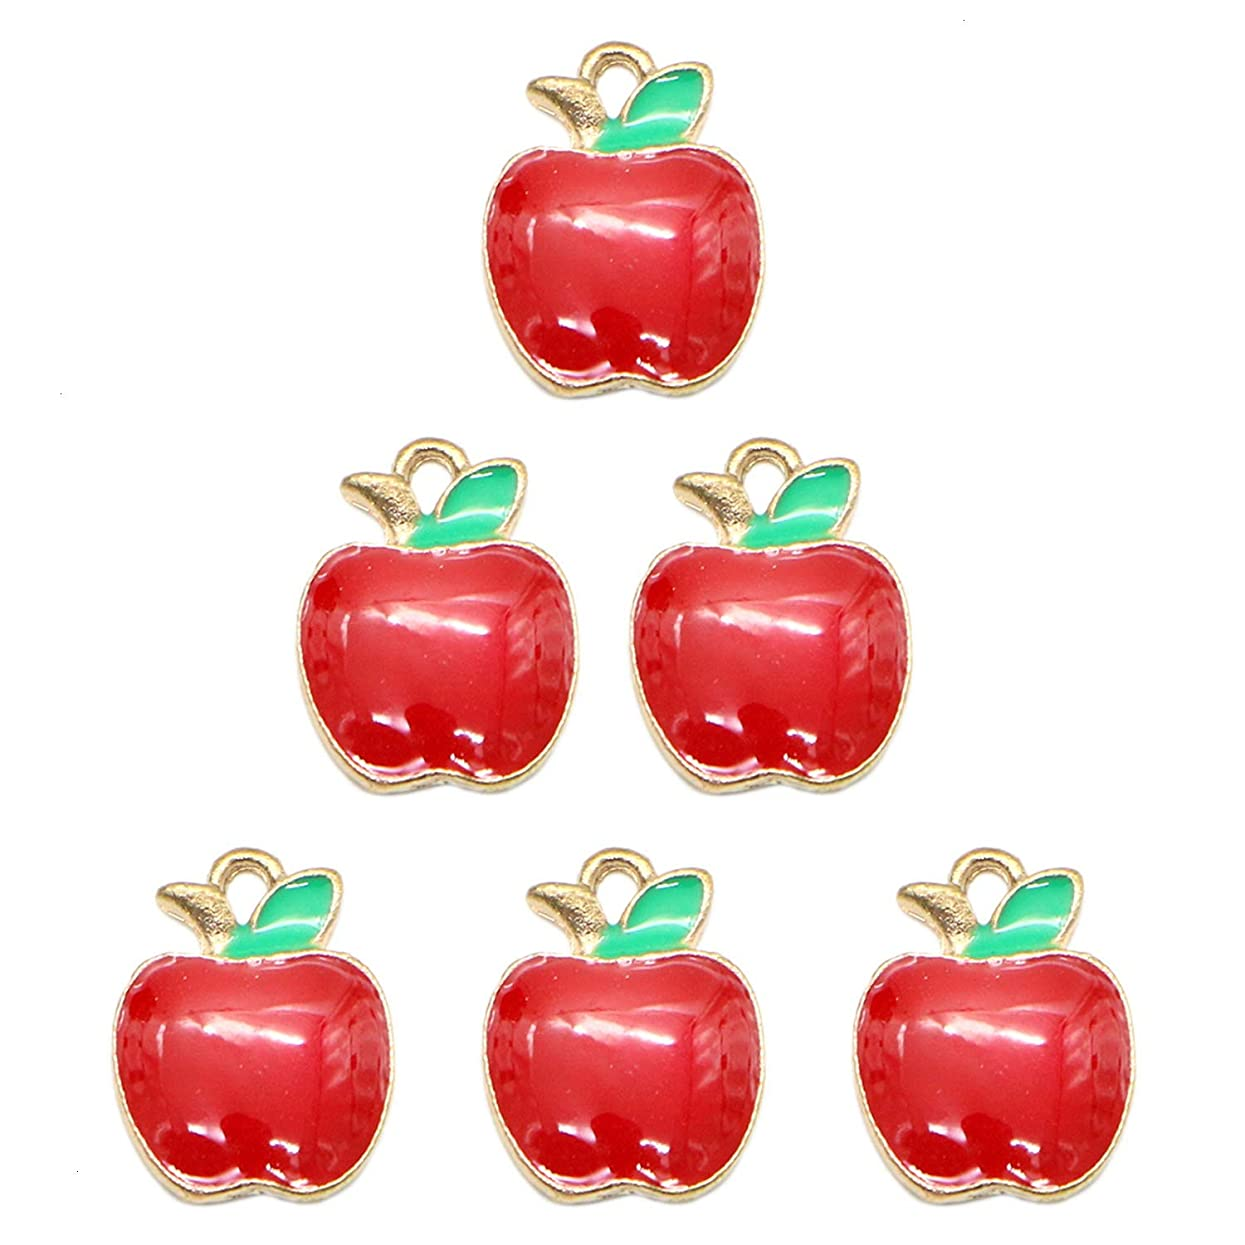 Monrocco 50Pcs Fruit Charm Fruit Enamel Charms Pendants for Jewelry Making, Crafting and Necklace